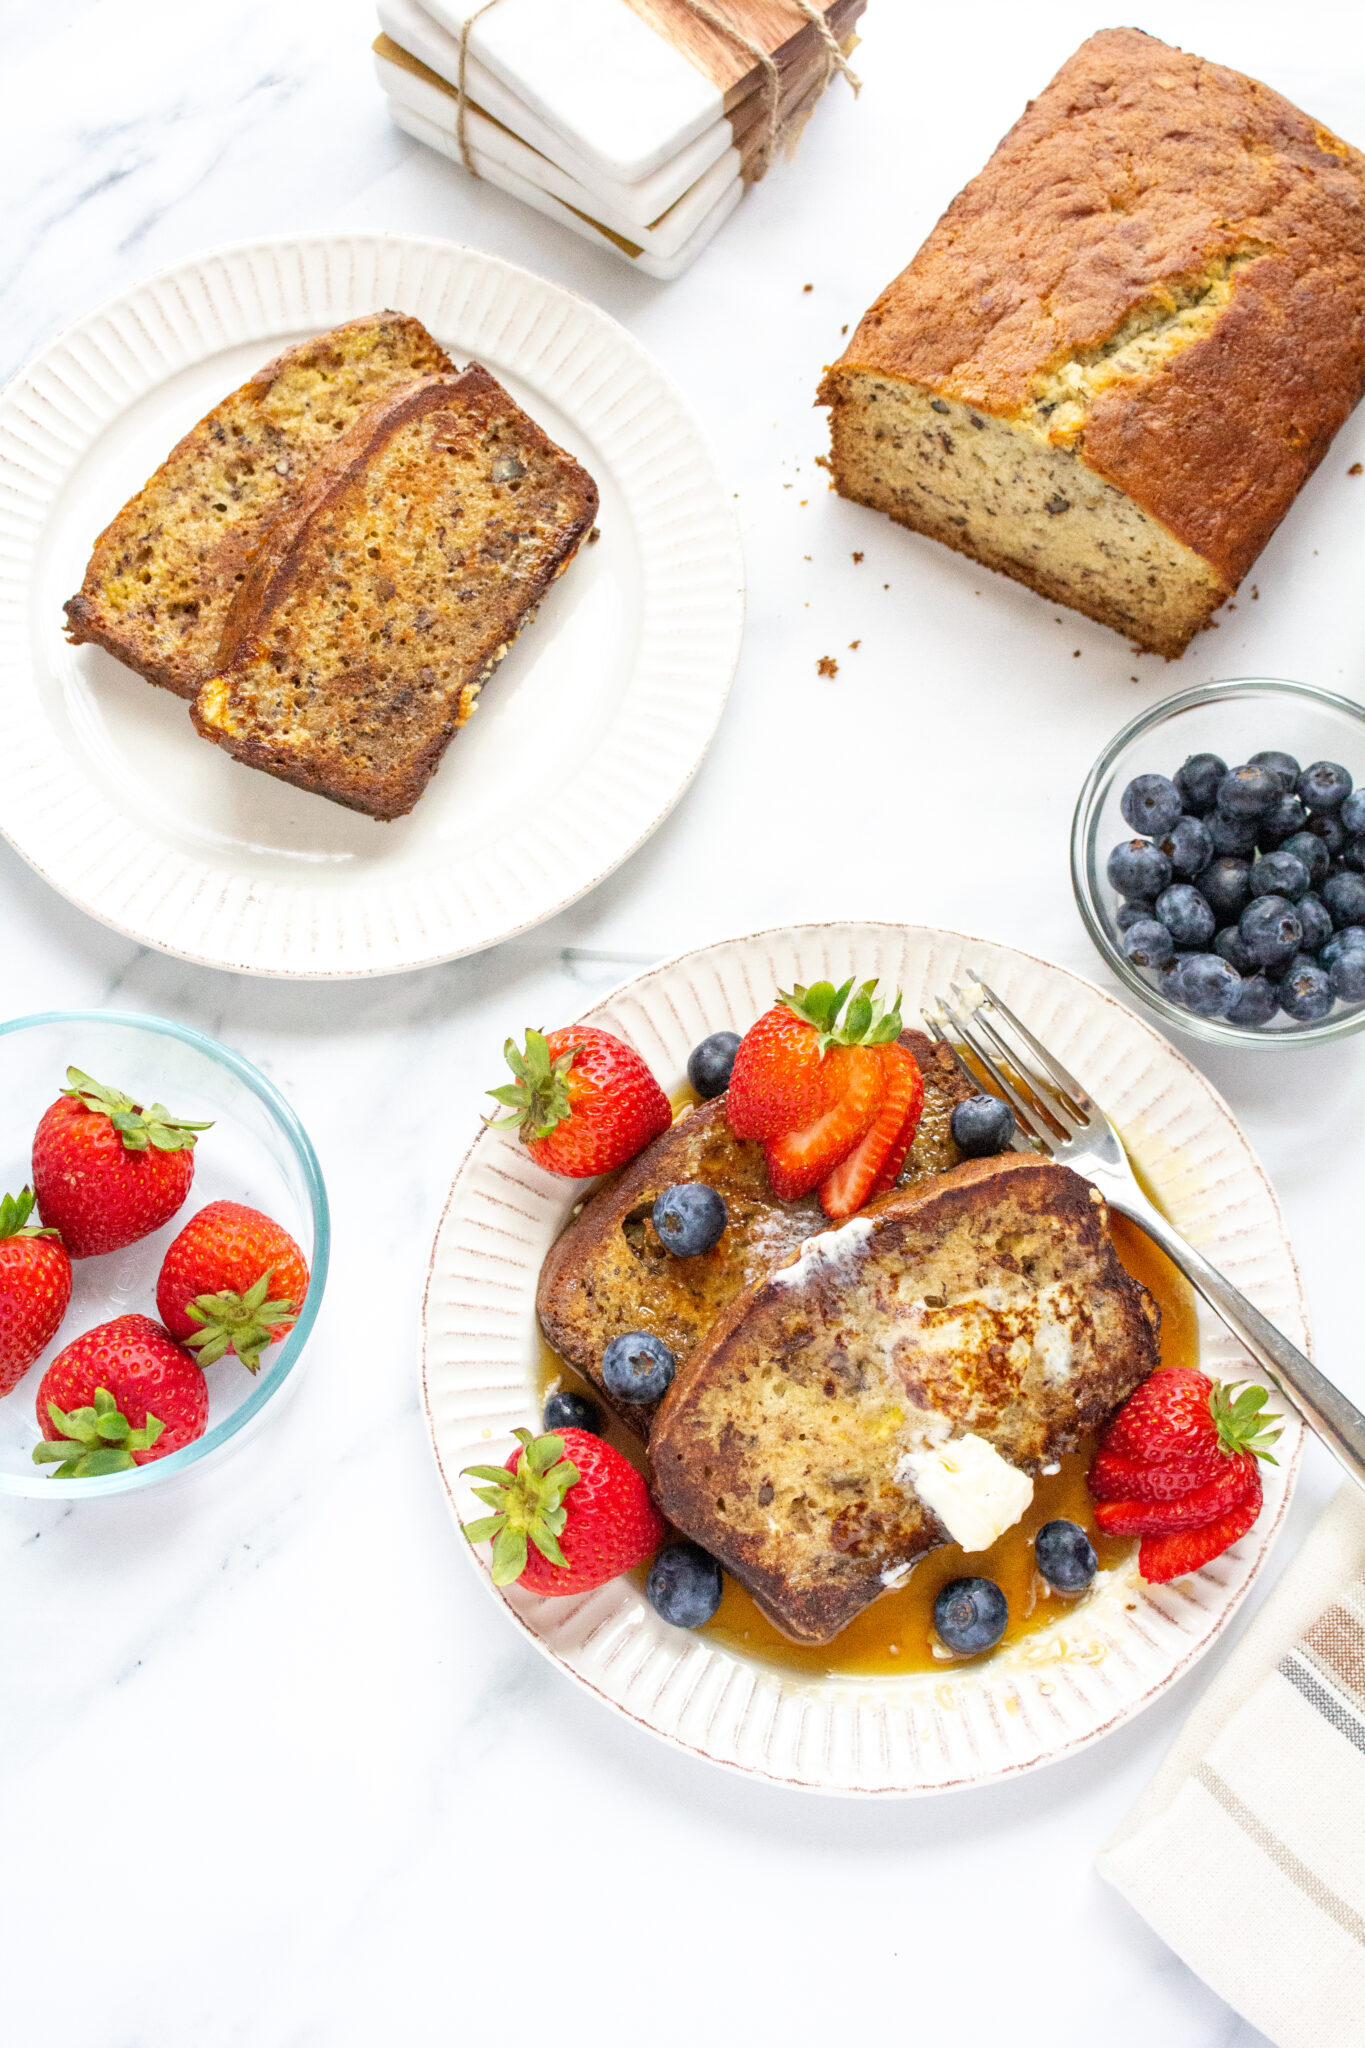 Banana Bread French Toast from The Happy Mustard Seed